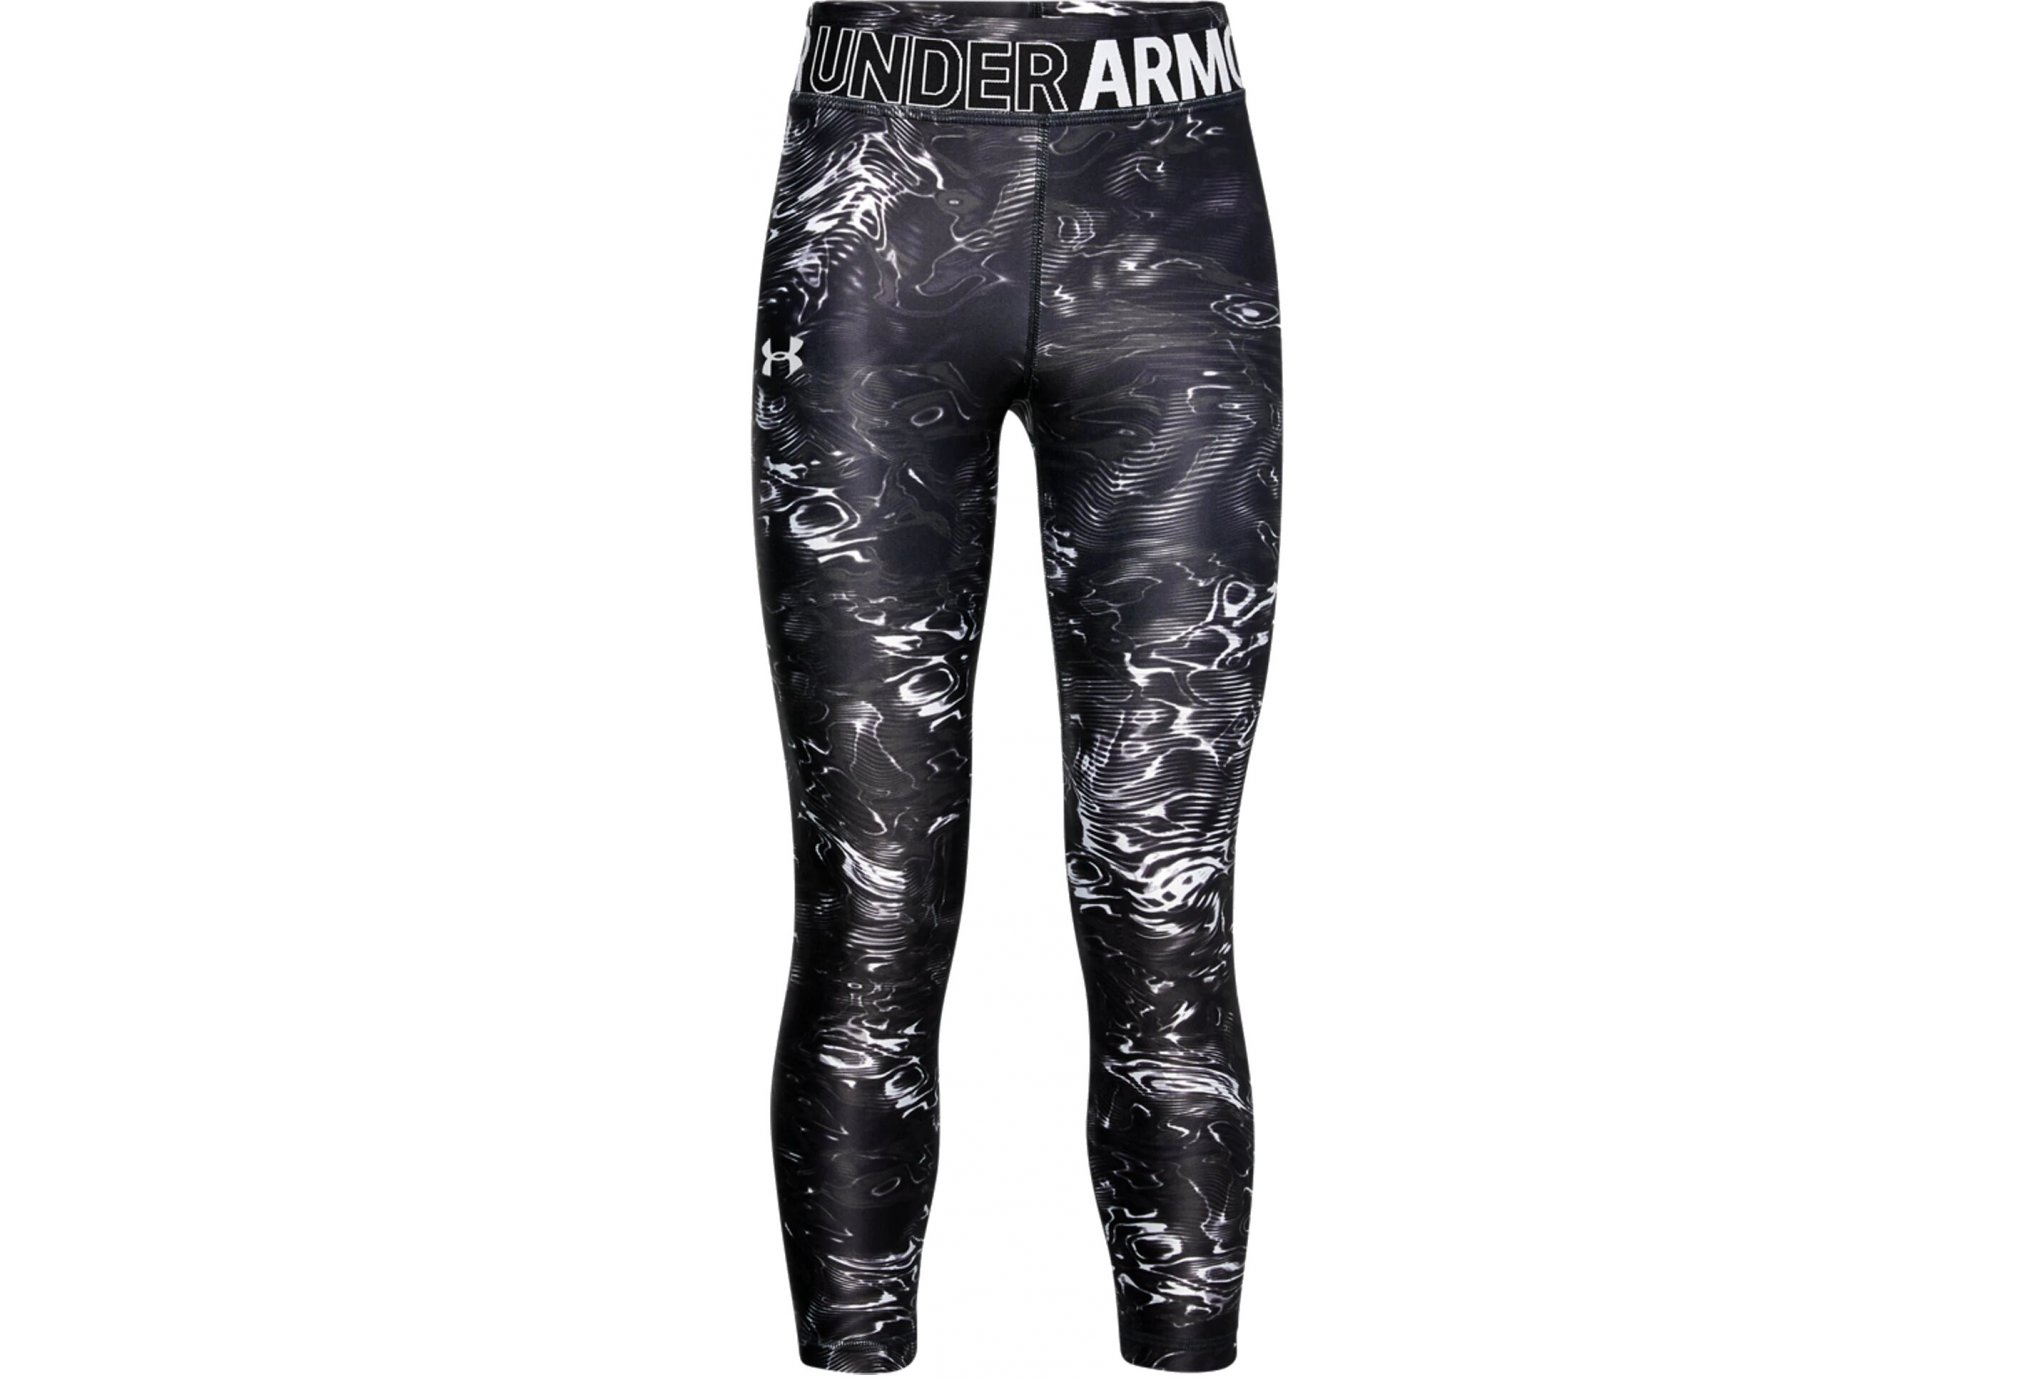 Under Armour Armour Printed Fille vêtement running femme